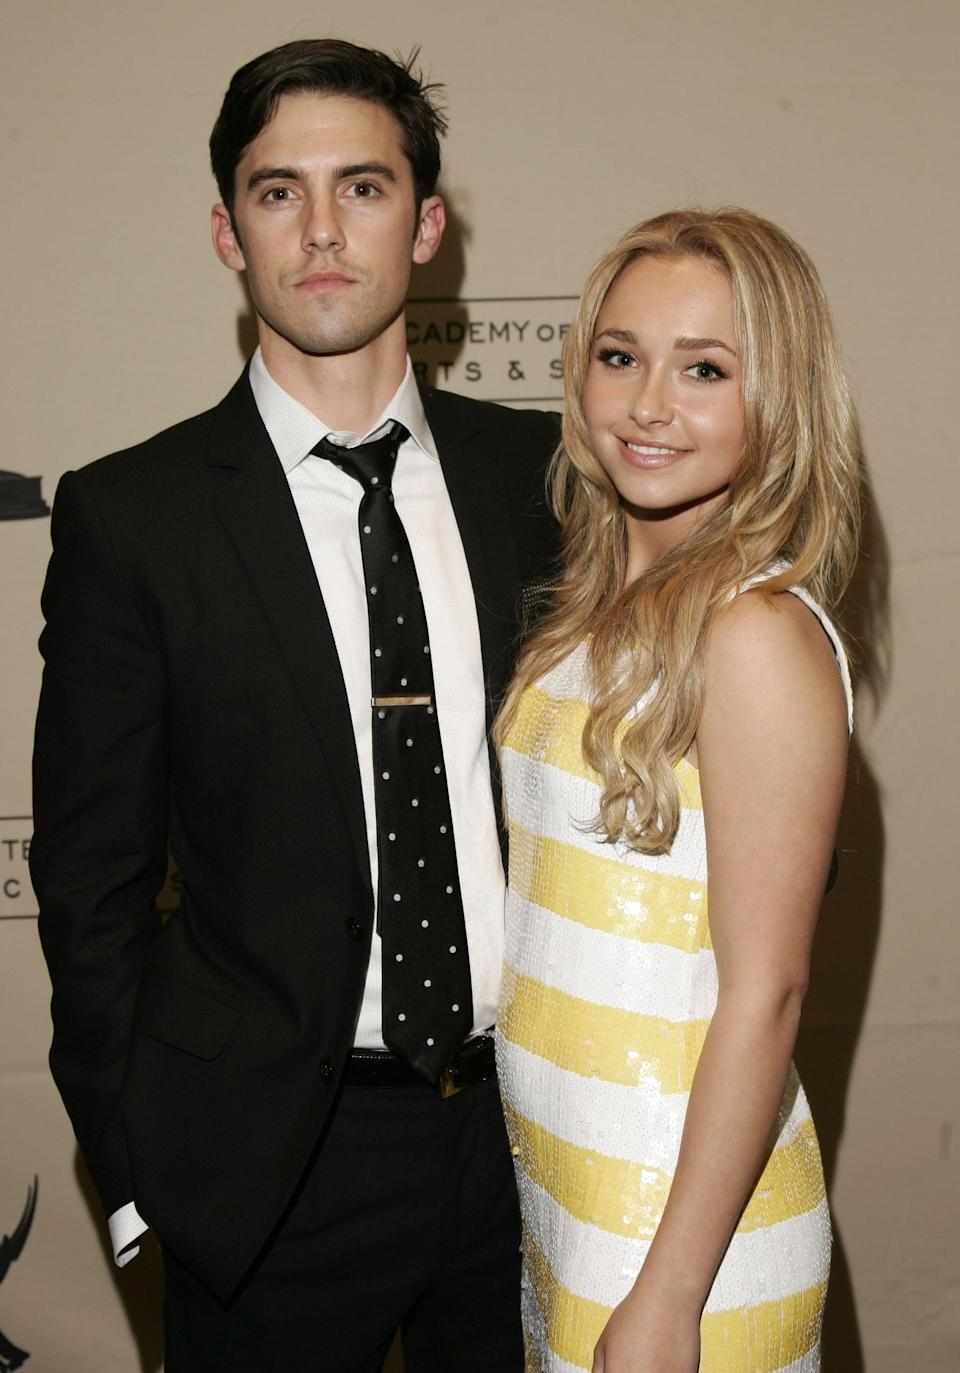 """<p>Hayden and Milo met on the set of <strong>Heroes </strong>in 2016, where they played niece and uncle - though that didn't deter some fans from shipping the pair. The two dated from 2007 to 2009, and they remained on the show until the end of the fourth and final season in 2010. </p> <p>Following the experience, Milo told <strong>Mr. Porter</strong> in September 2017 that <span>he would """"never again"""" date a costar</span>. """"There are things that happen to you in your life that shape who you are,"""" he added. """"Everything I've been through from jobs to friendships to partnerships - everything has built me to who I am. You learn from it. You learn a better way of doing things. It wasn't until my mid to late twenties that the job wears on you, relationships wear on you. But I wouldn't change a thing. When you get knocked over the head in life, it builds your perspective.""""</p>"""